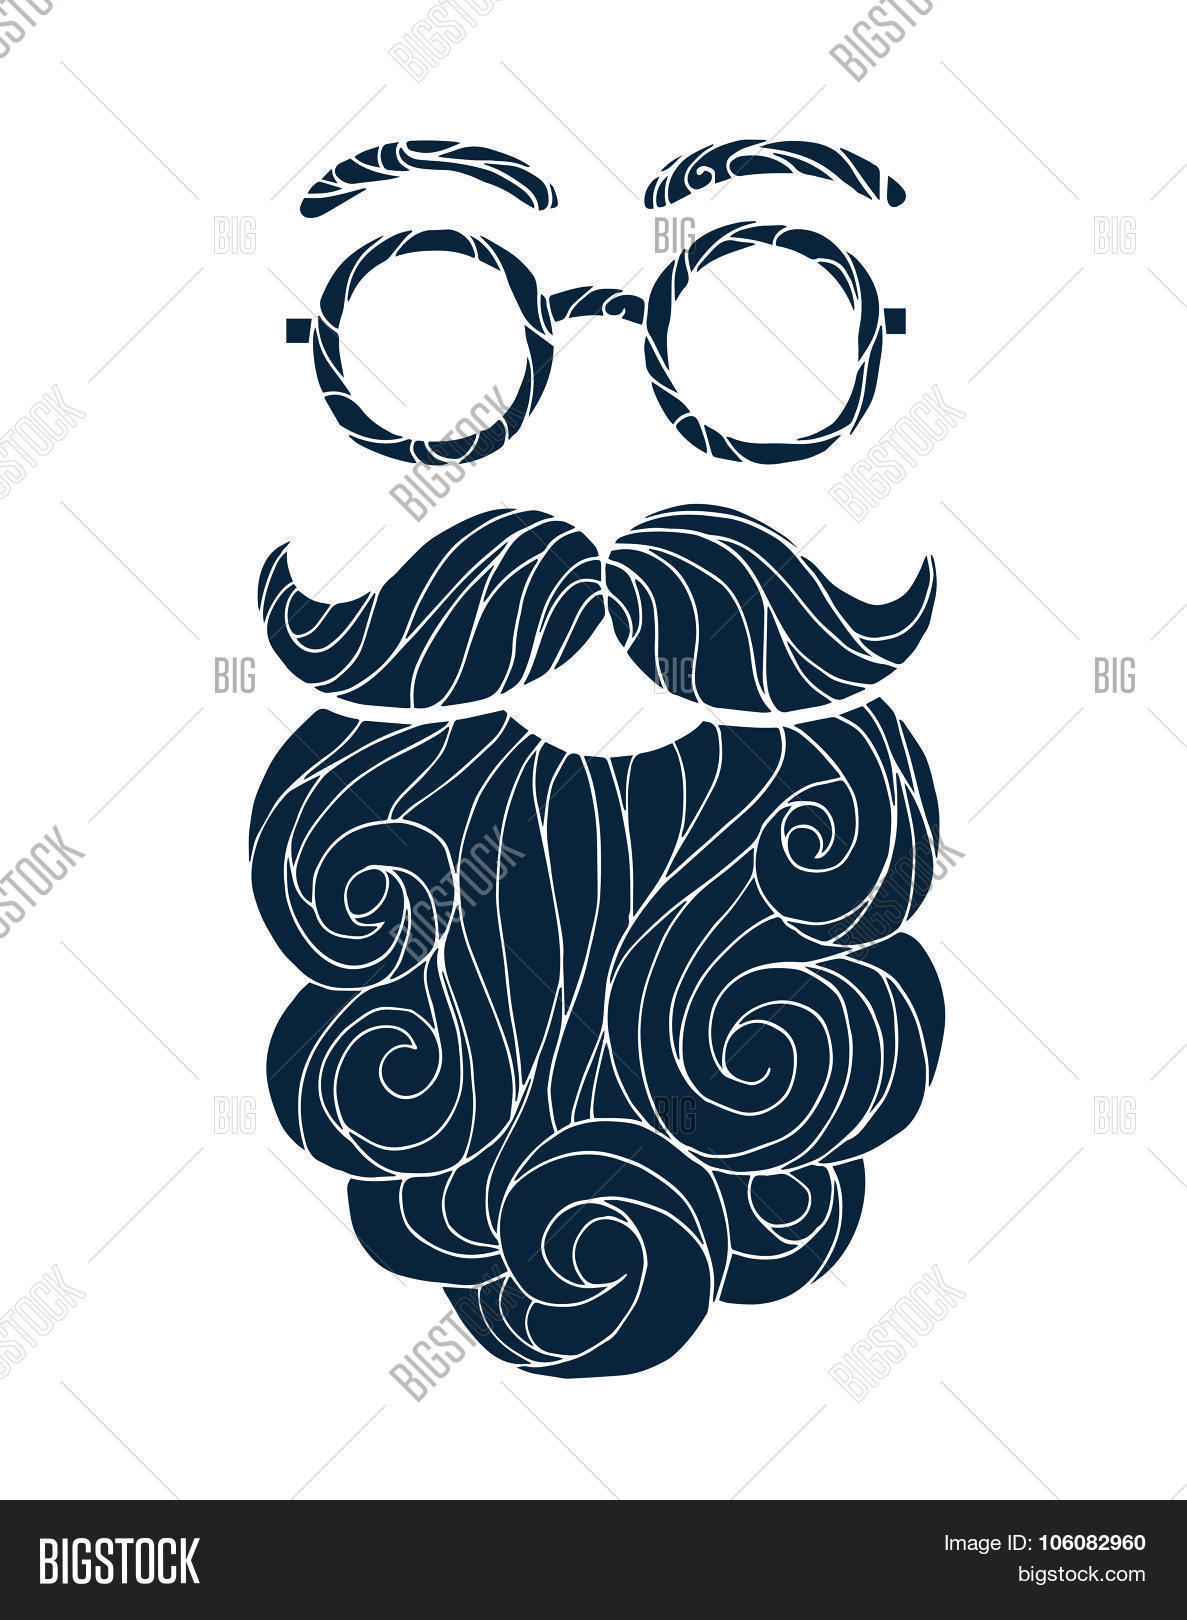 1187x1620 Vector Illustration Mustache Vector Amp Photo Bigstock